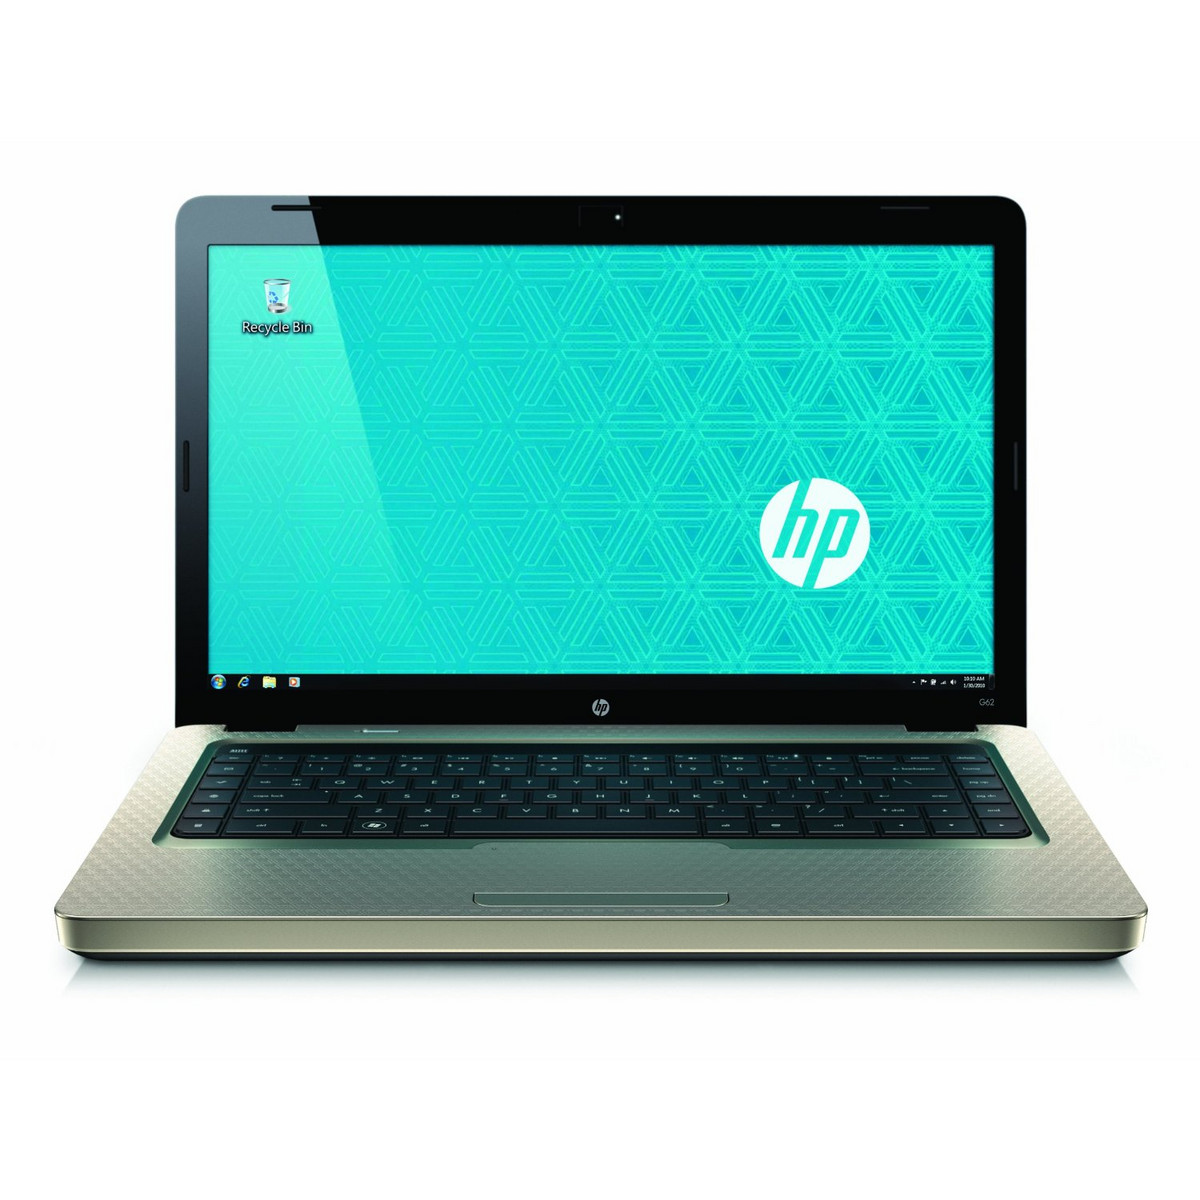 HP G62-143CL Notebook AMD HD Display Driver for Mac